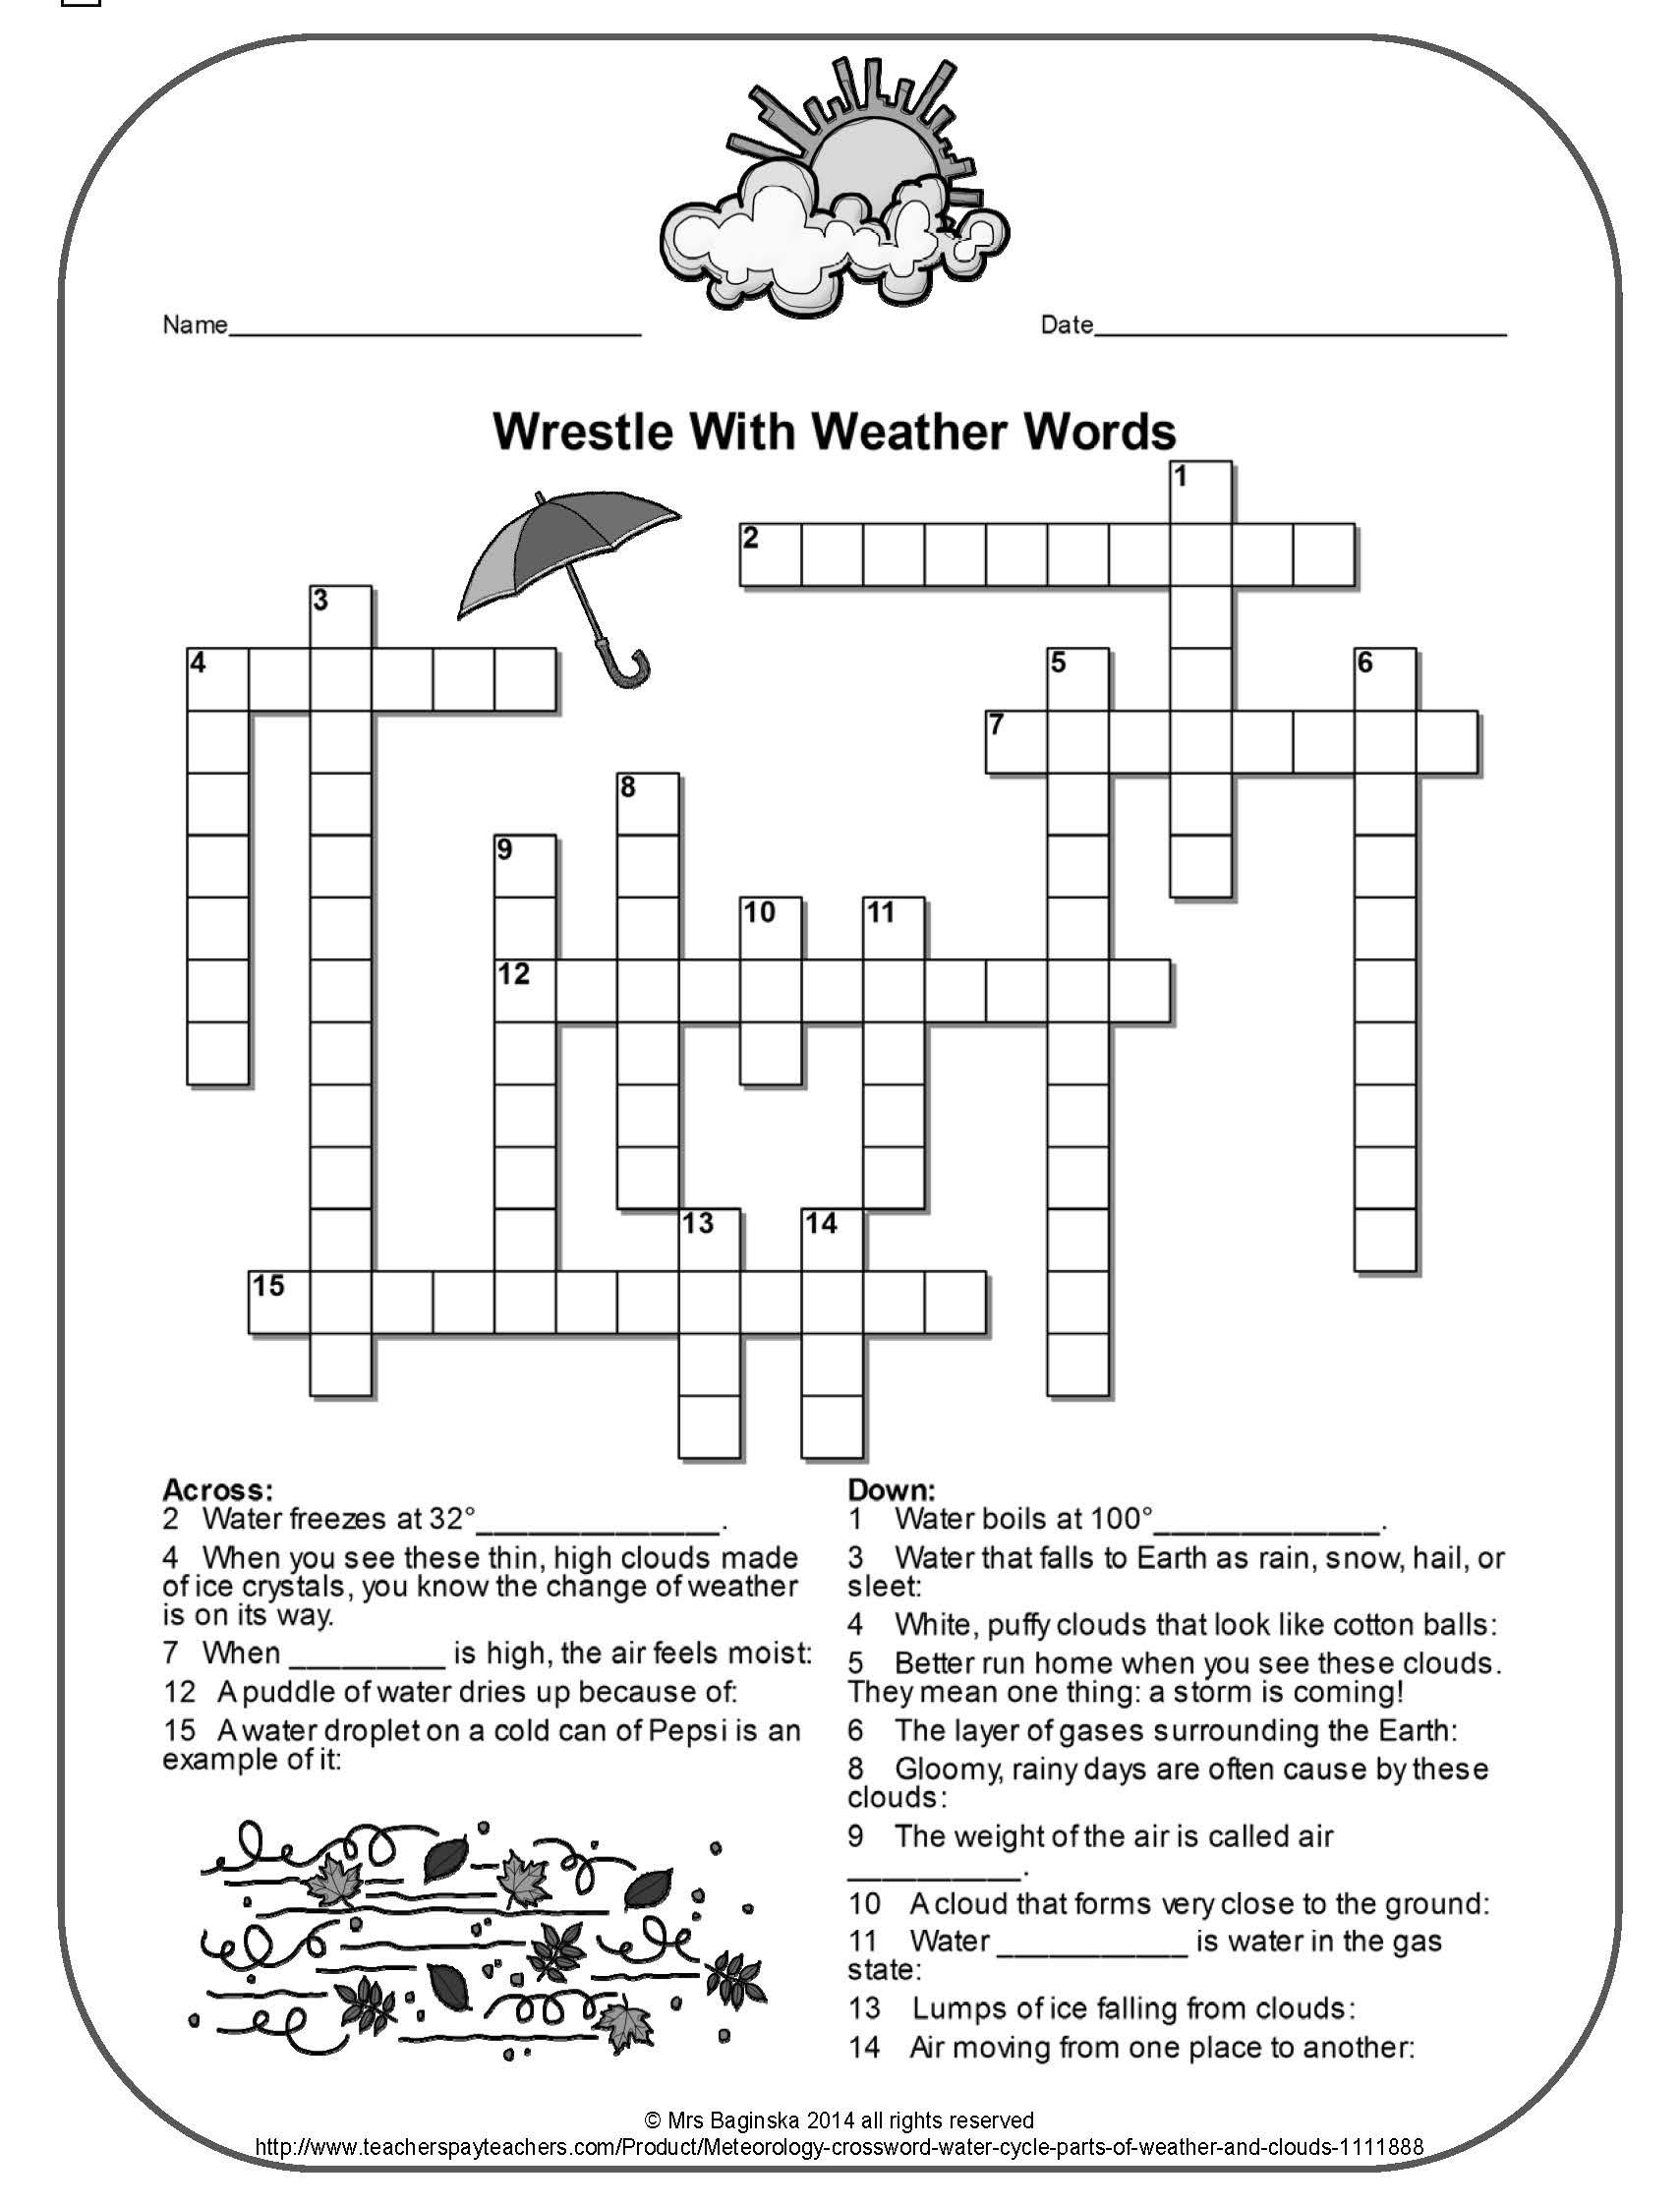 Free Weather Crossword Perfect For The Review Of